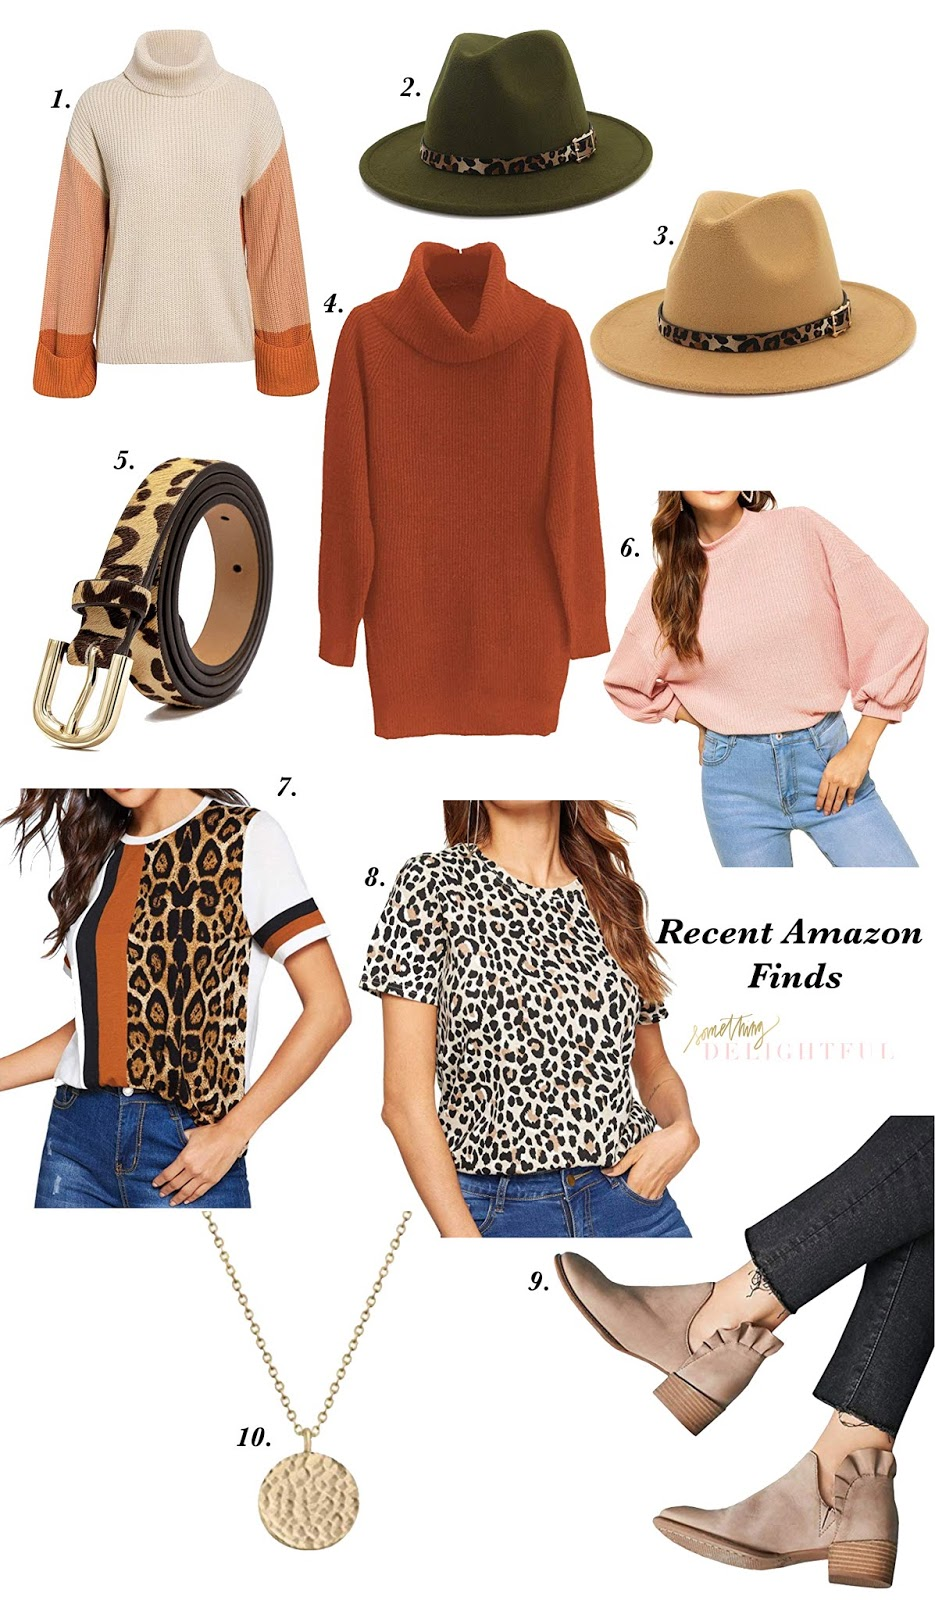 Recent Amazon Finds: Sweaters, Pullover, Booties, Hats and More! - Something Delightful Blog